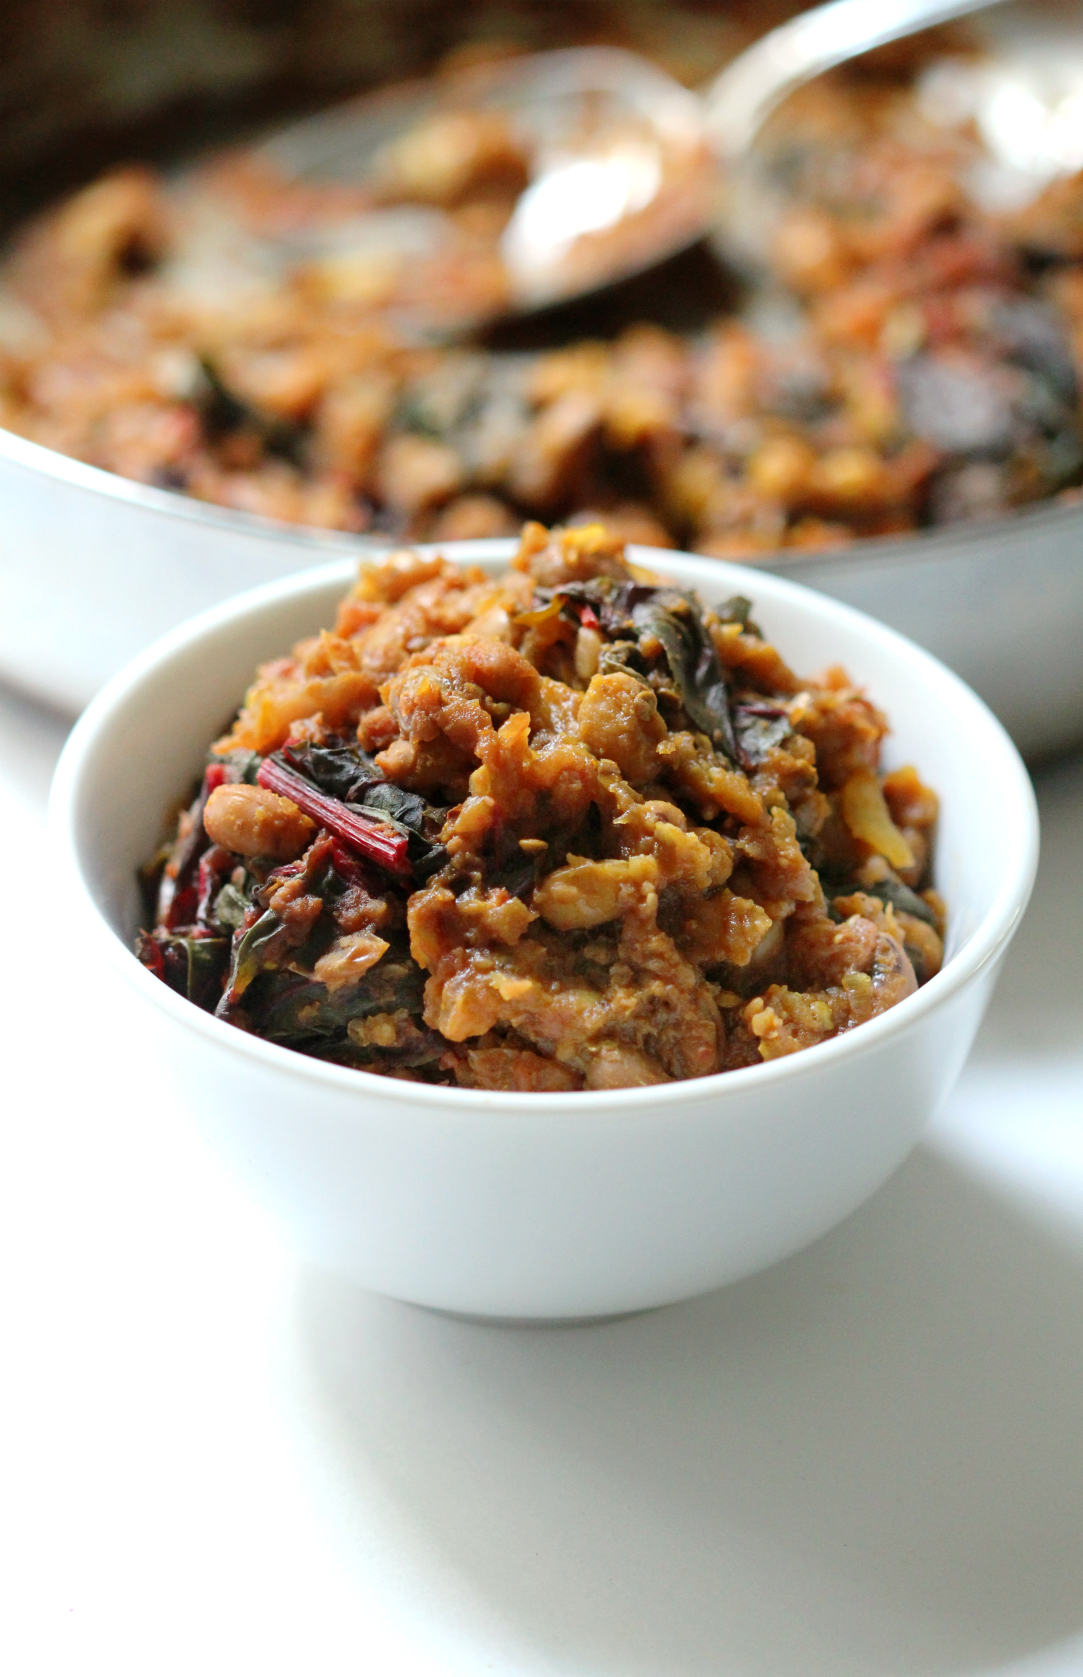 Black Eyed Pea Curry with Swiss Chard & Roasted Eggplant | Strength and Sunshine @RebeccaGF666 An easy quick curry for a warming meal any night of the week. Black Eyed Pea Curry with Swiss Chard & Roasted Eggplant is packed with creamy veggie power to satisfy even this biggest plant-based skeptic! A perfect gluten-free, vegan, meatless dinner recipe.